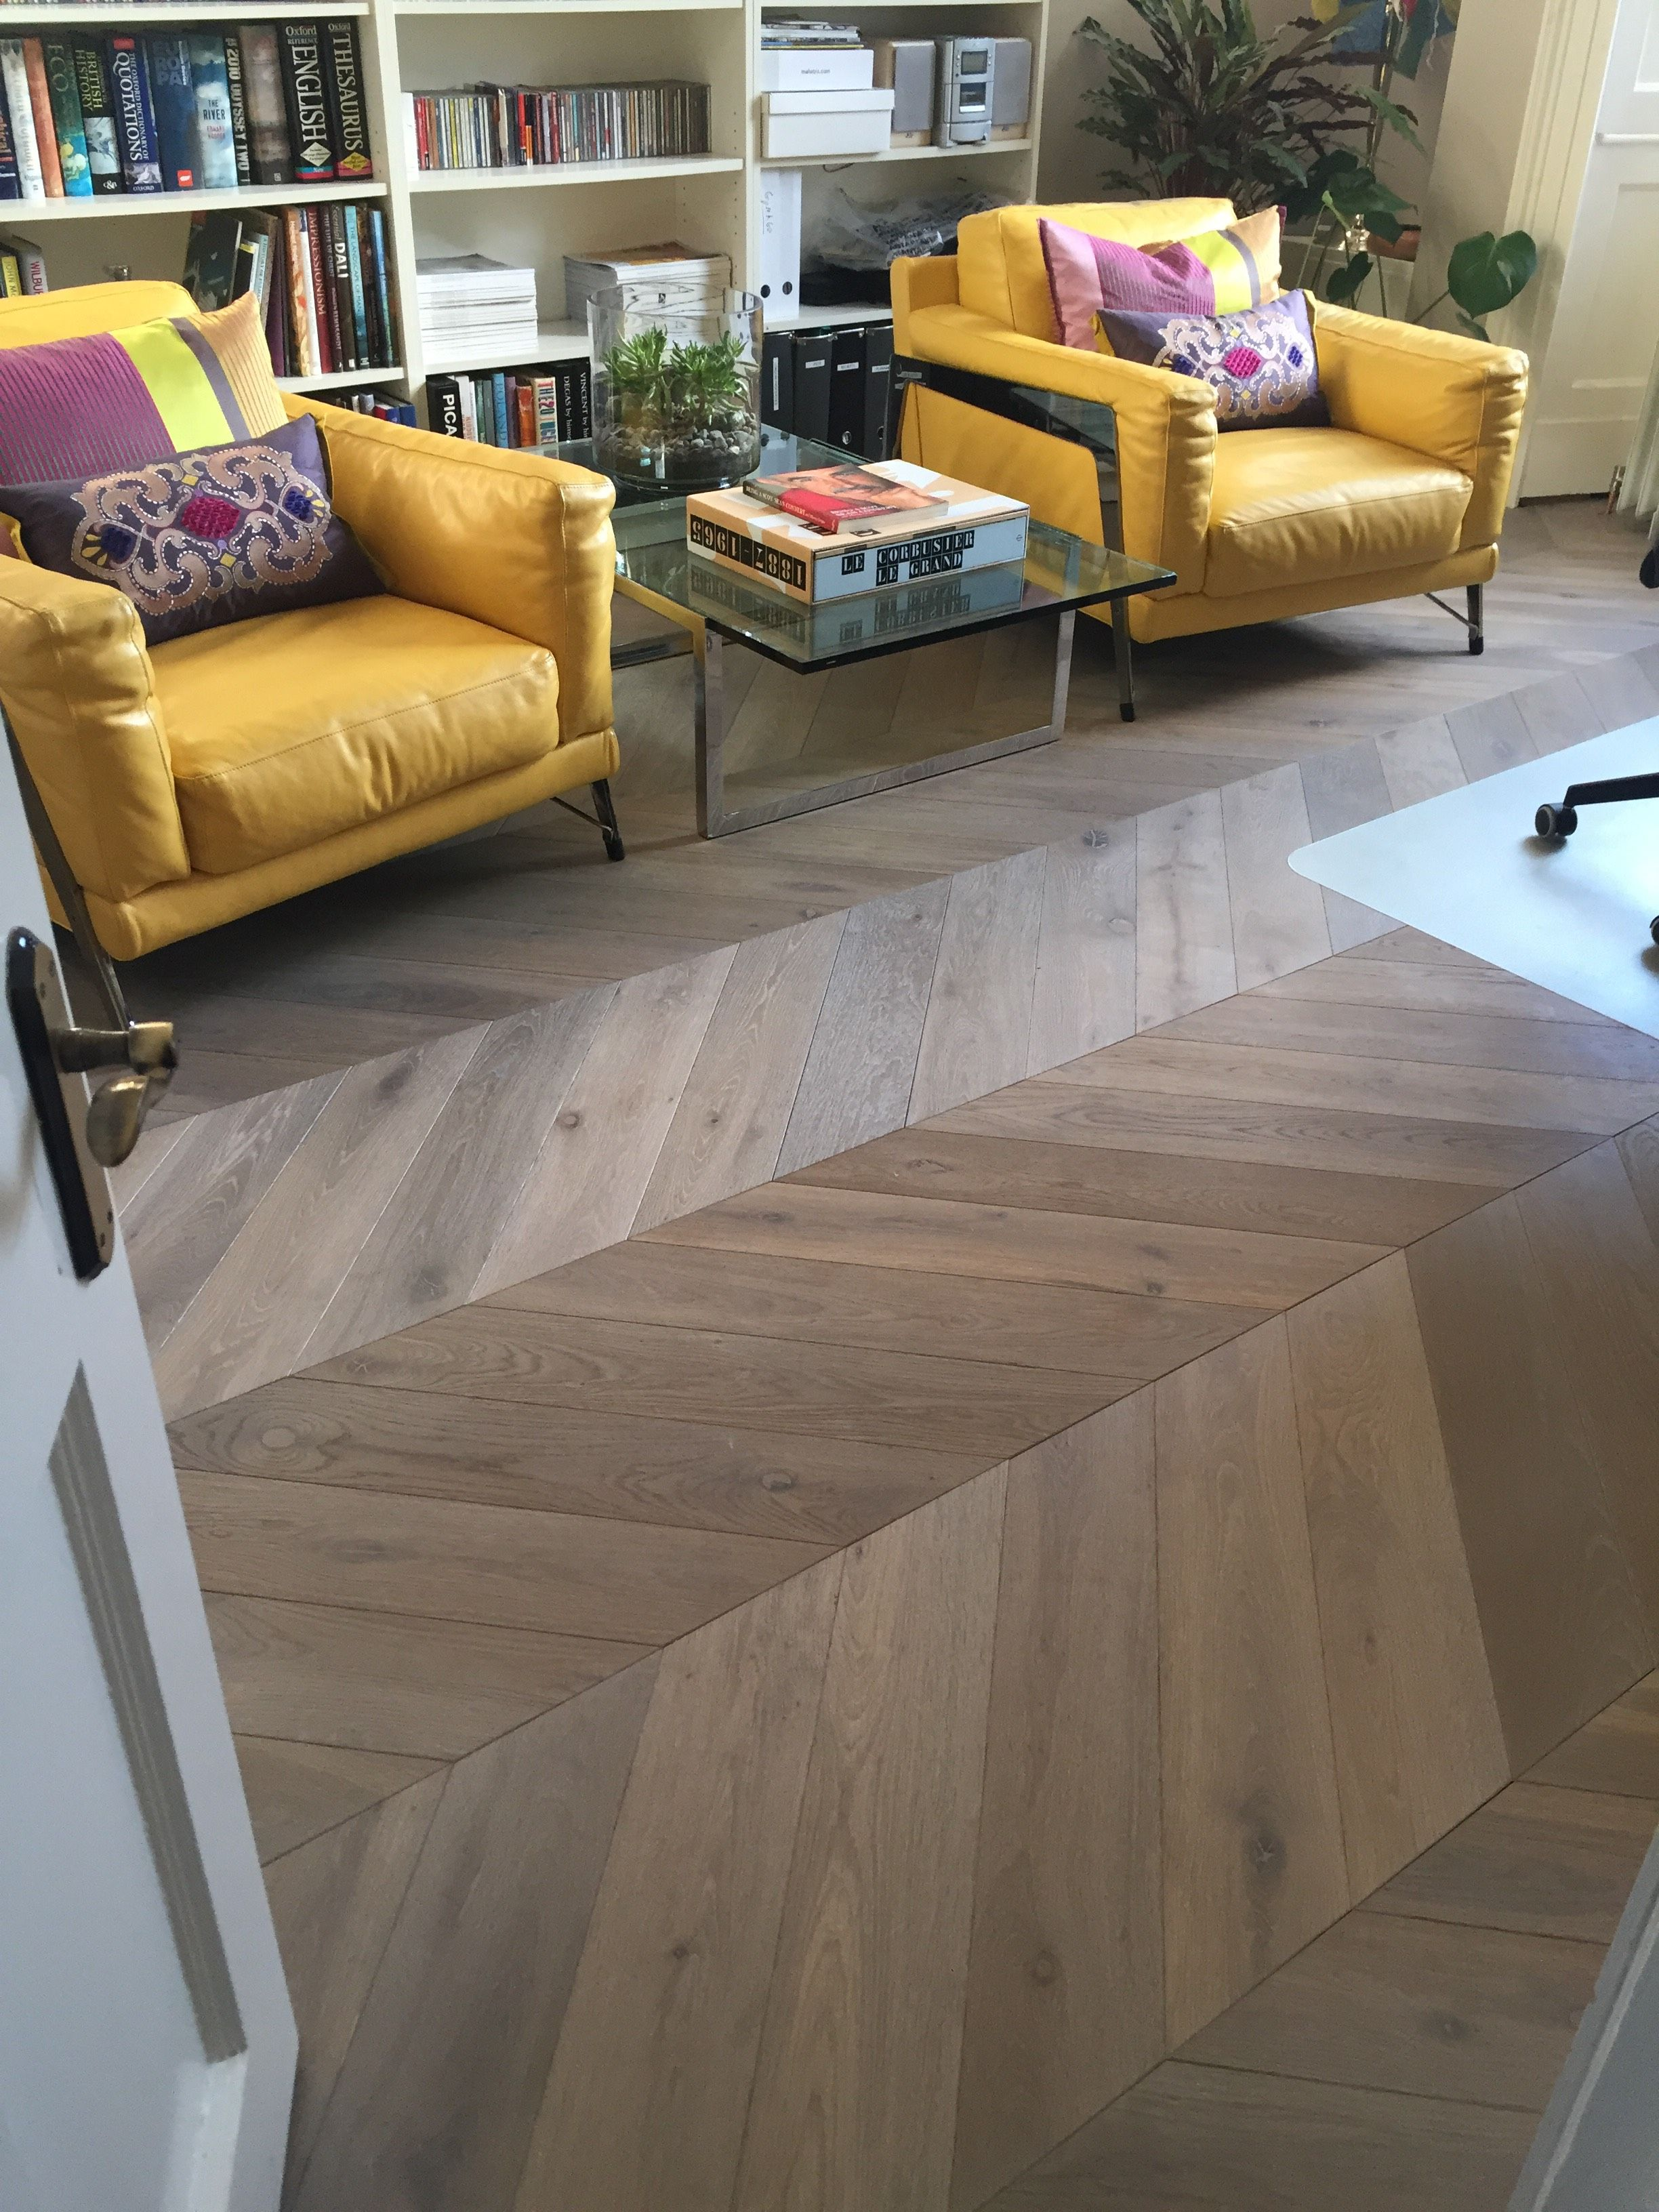 Chevron Engineered Oak Parquet Flooring Product Silver Grey Brushed Grade Rustic Free Wood Samples Sent Daily